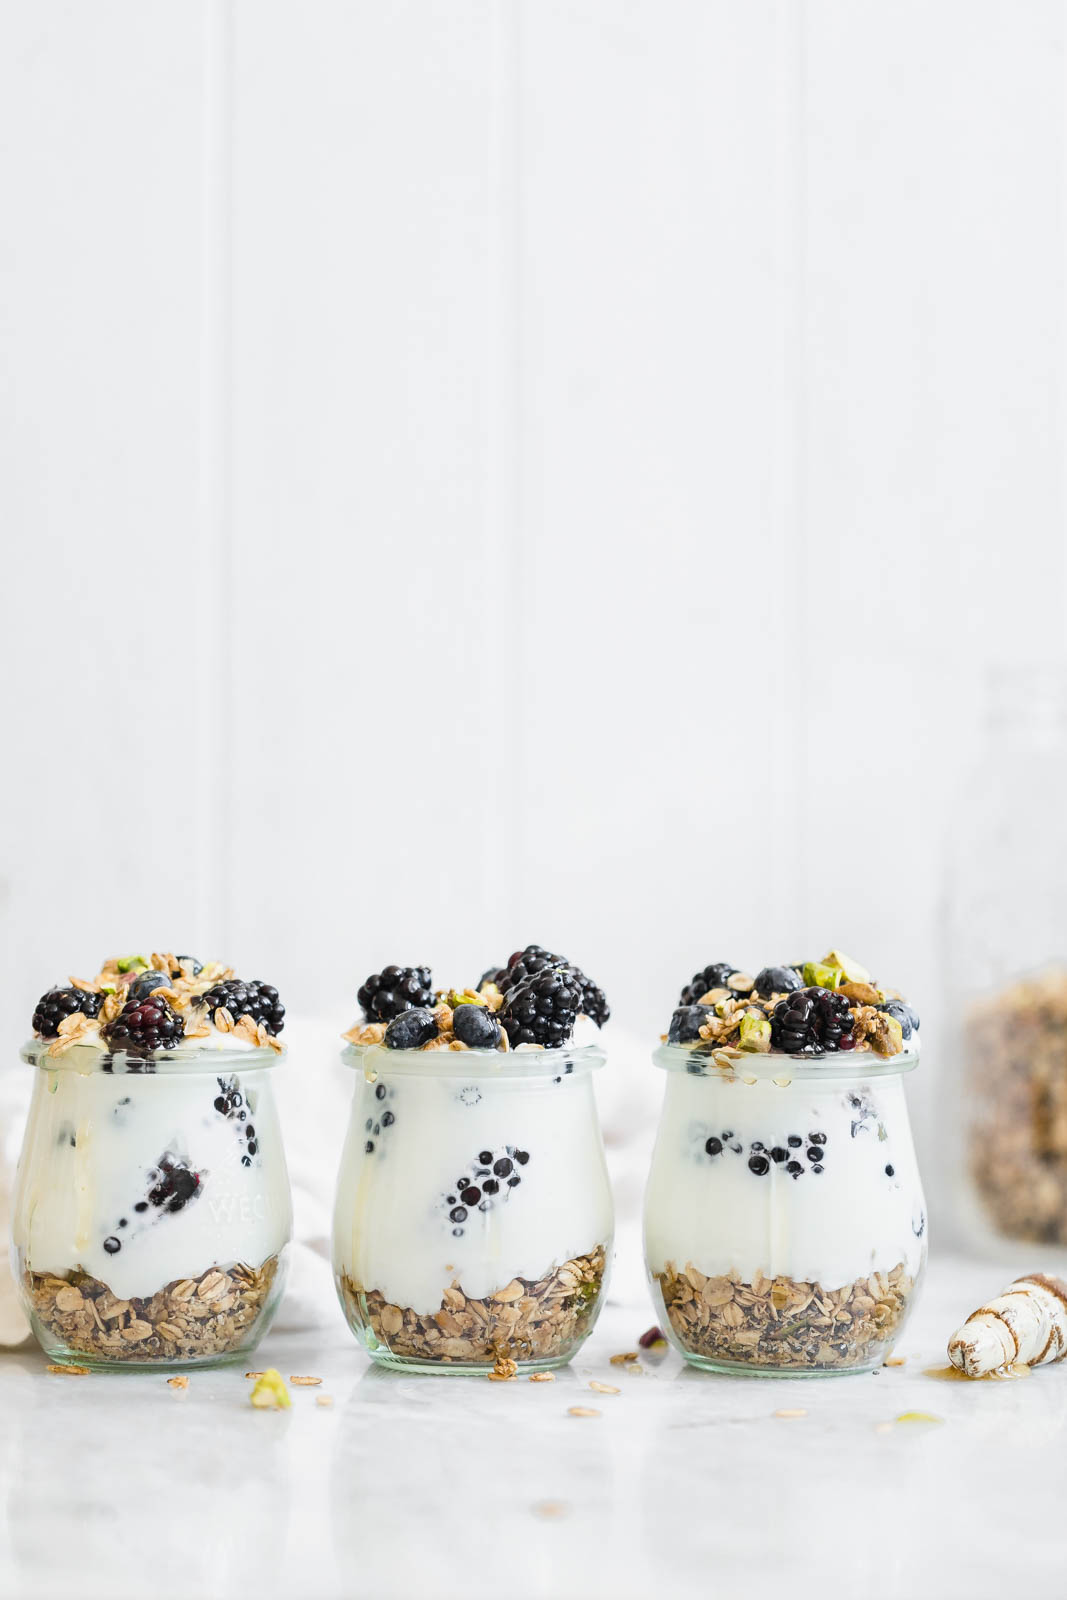 A chai-spiced Cardamom Granola Parfait made with the most addicting Cardamom granola, and topped with blackberries and honey.